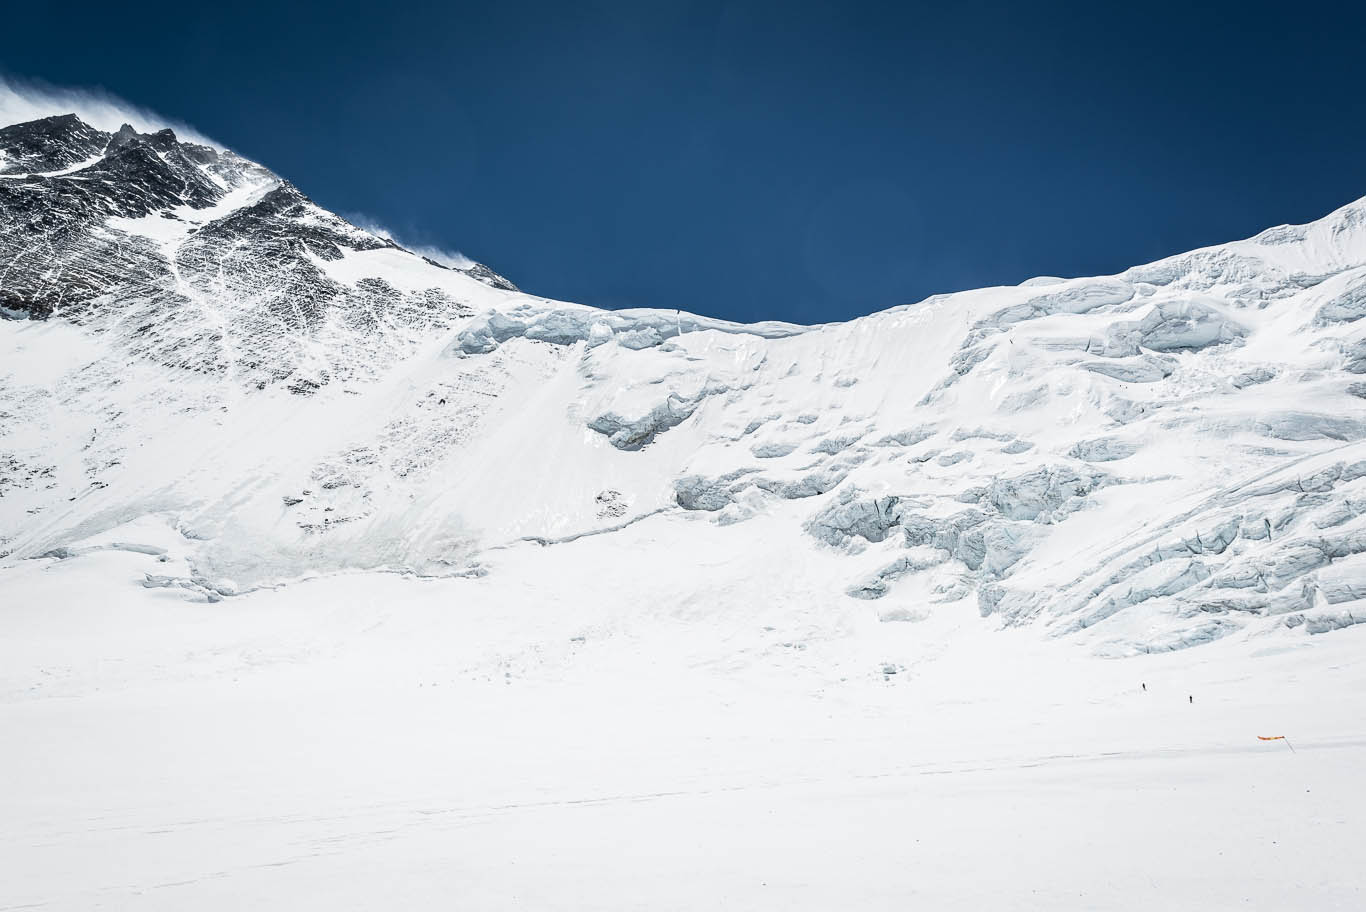 Lost On Everest – The Search For Mallory & Irvine. 2/5